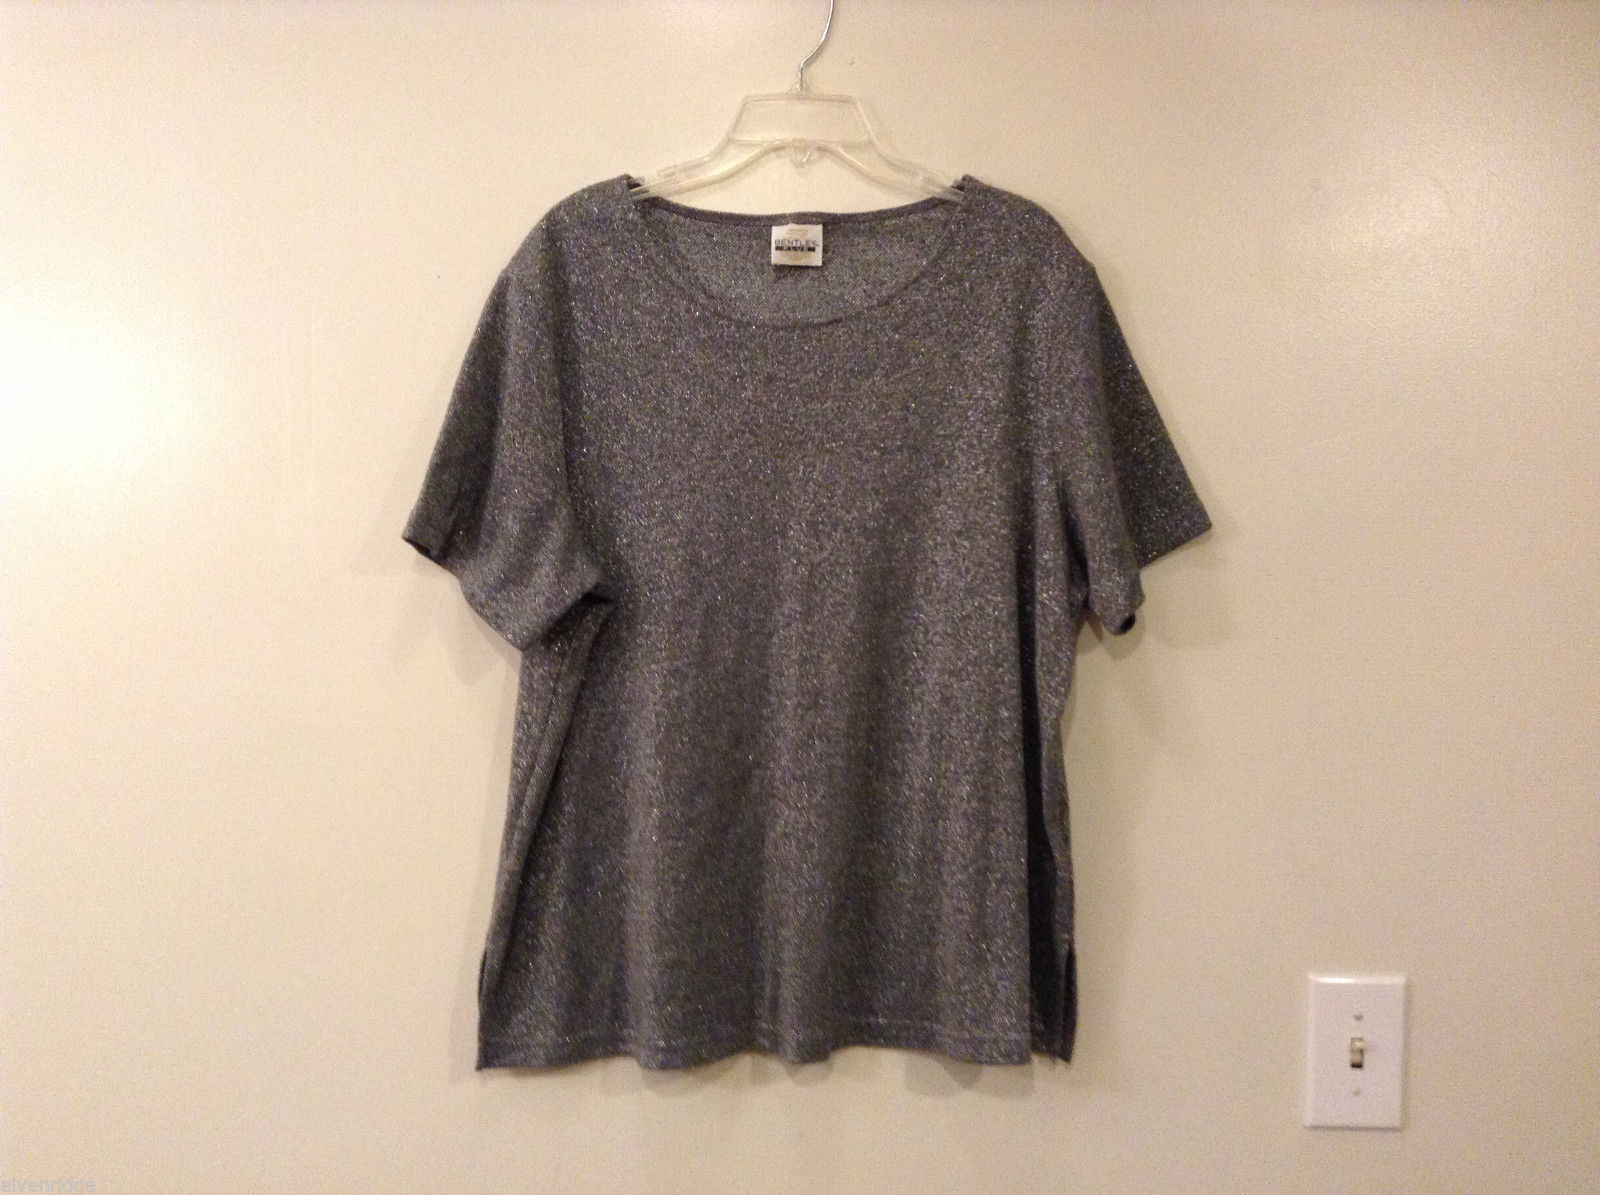 Bentley Plus Gray Silver Metallic T-shirt Blouse, Size XL (but no tag)